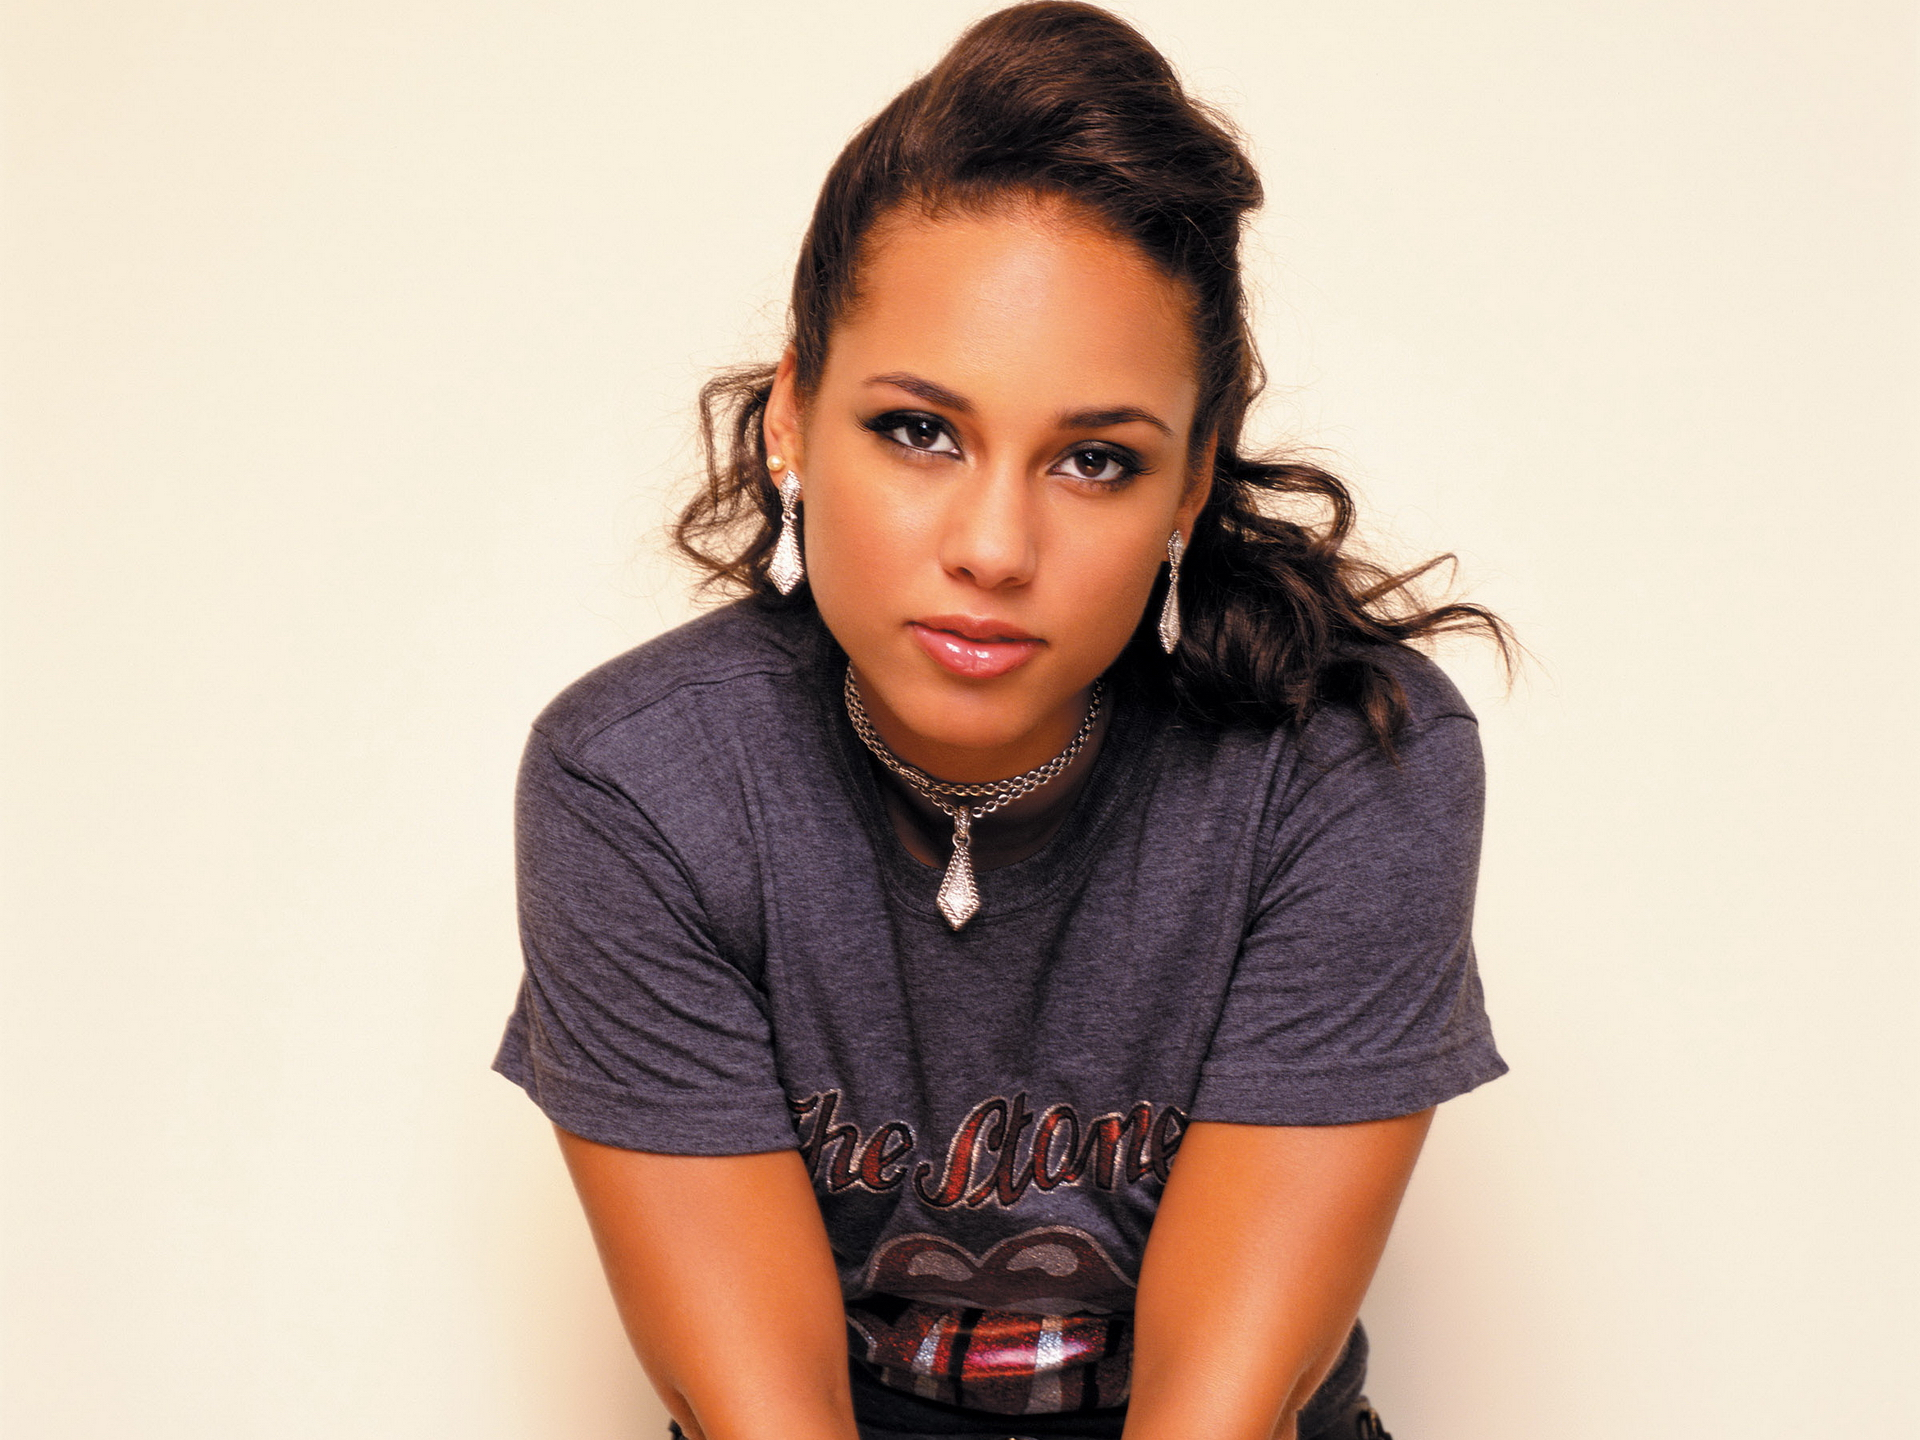 Alicia Keys 2014 wallpapers Alicia Keys pics